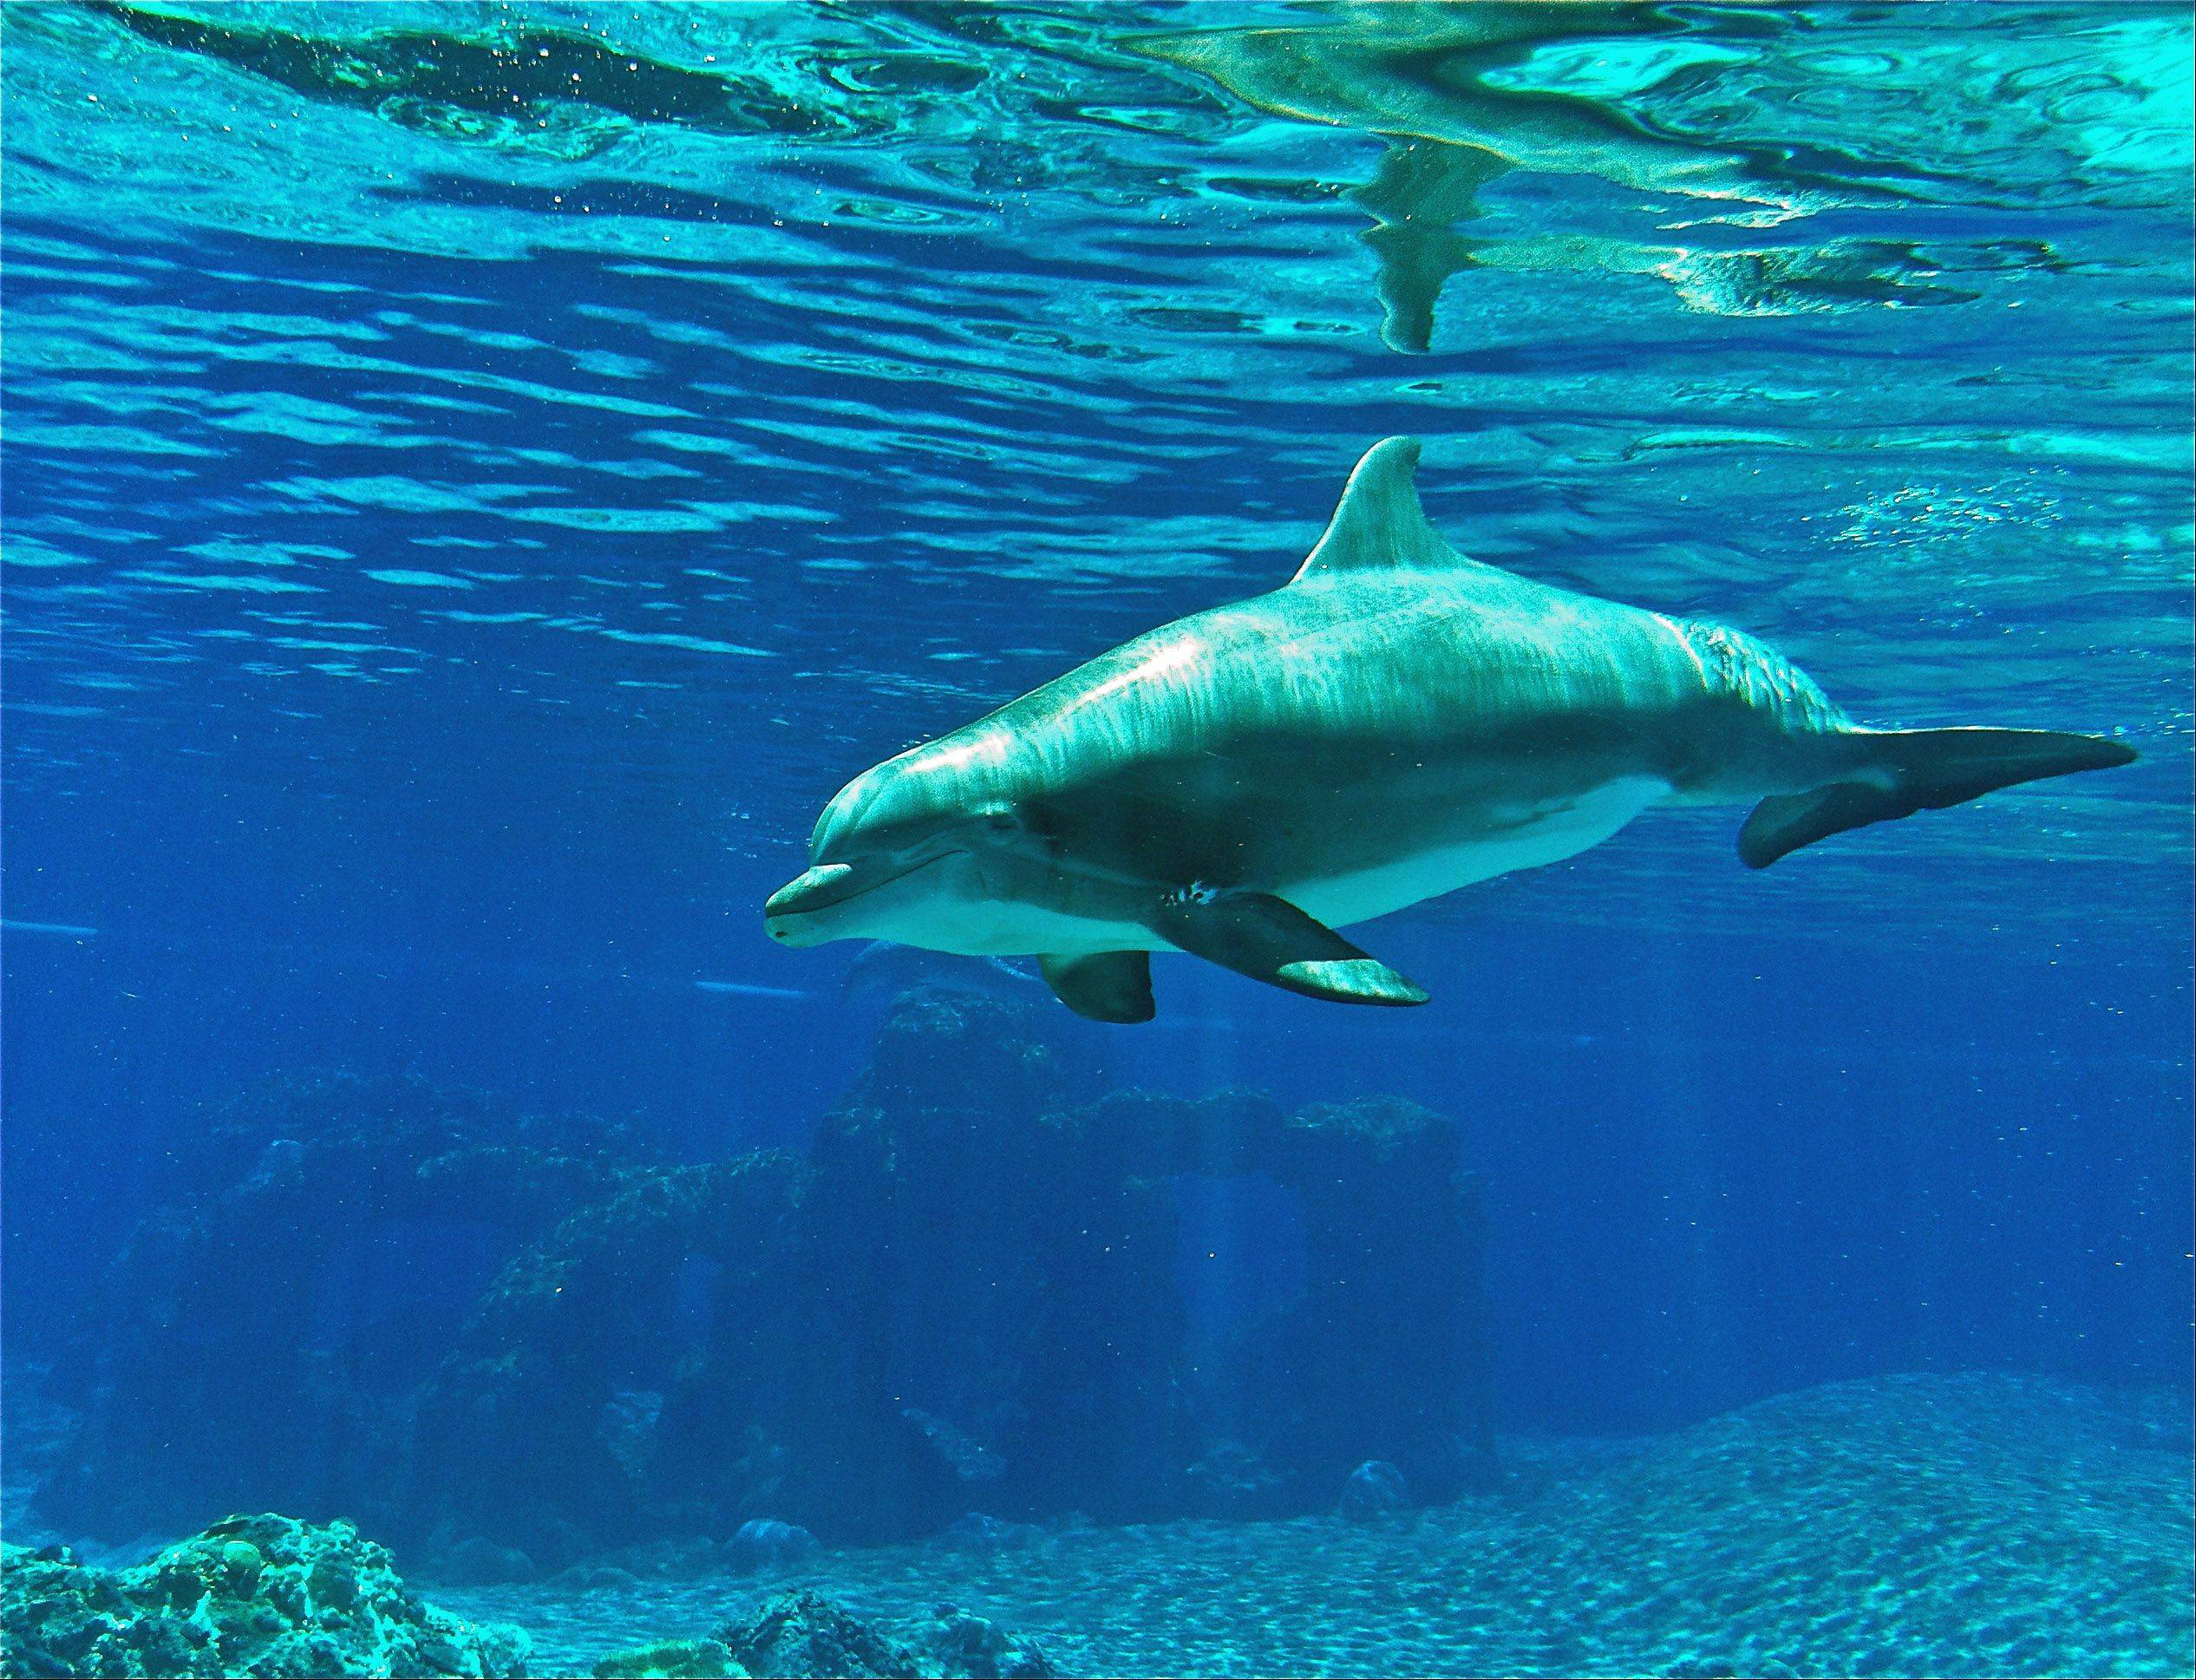 A dolphin swims underwater at the Siegfried & Roy Secret Garden & Dolphin Habitat at the Mirage Hotel in Las Vegas.